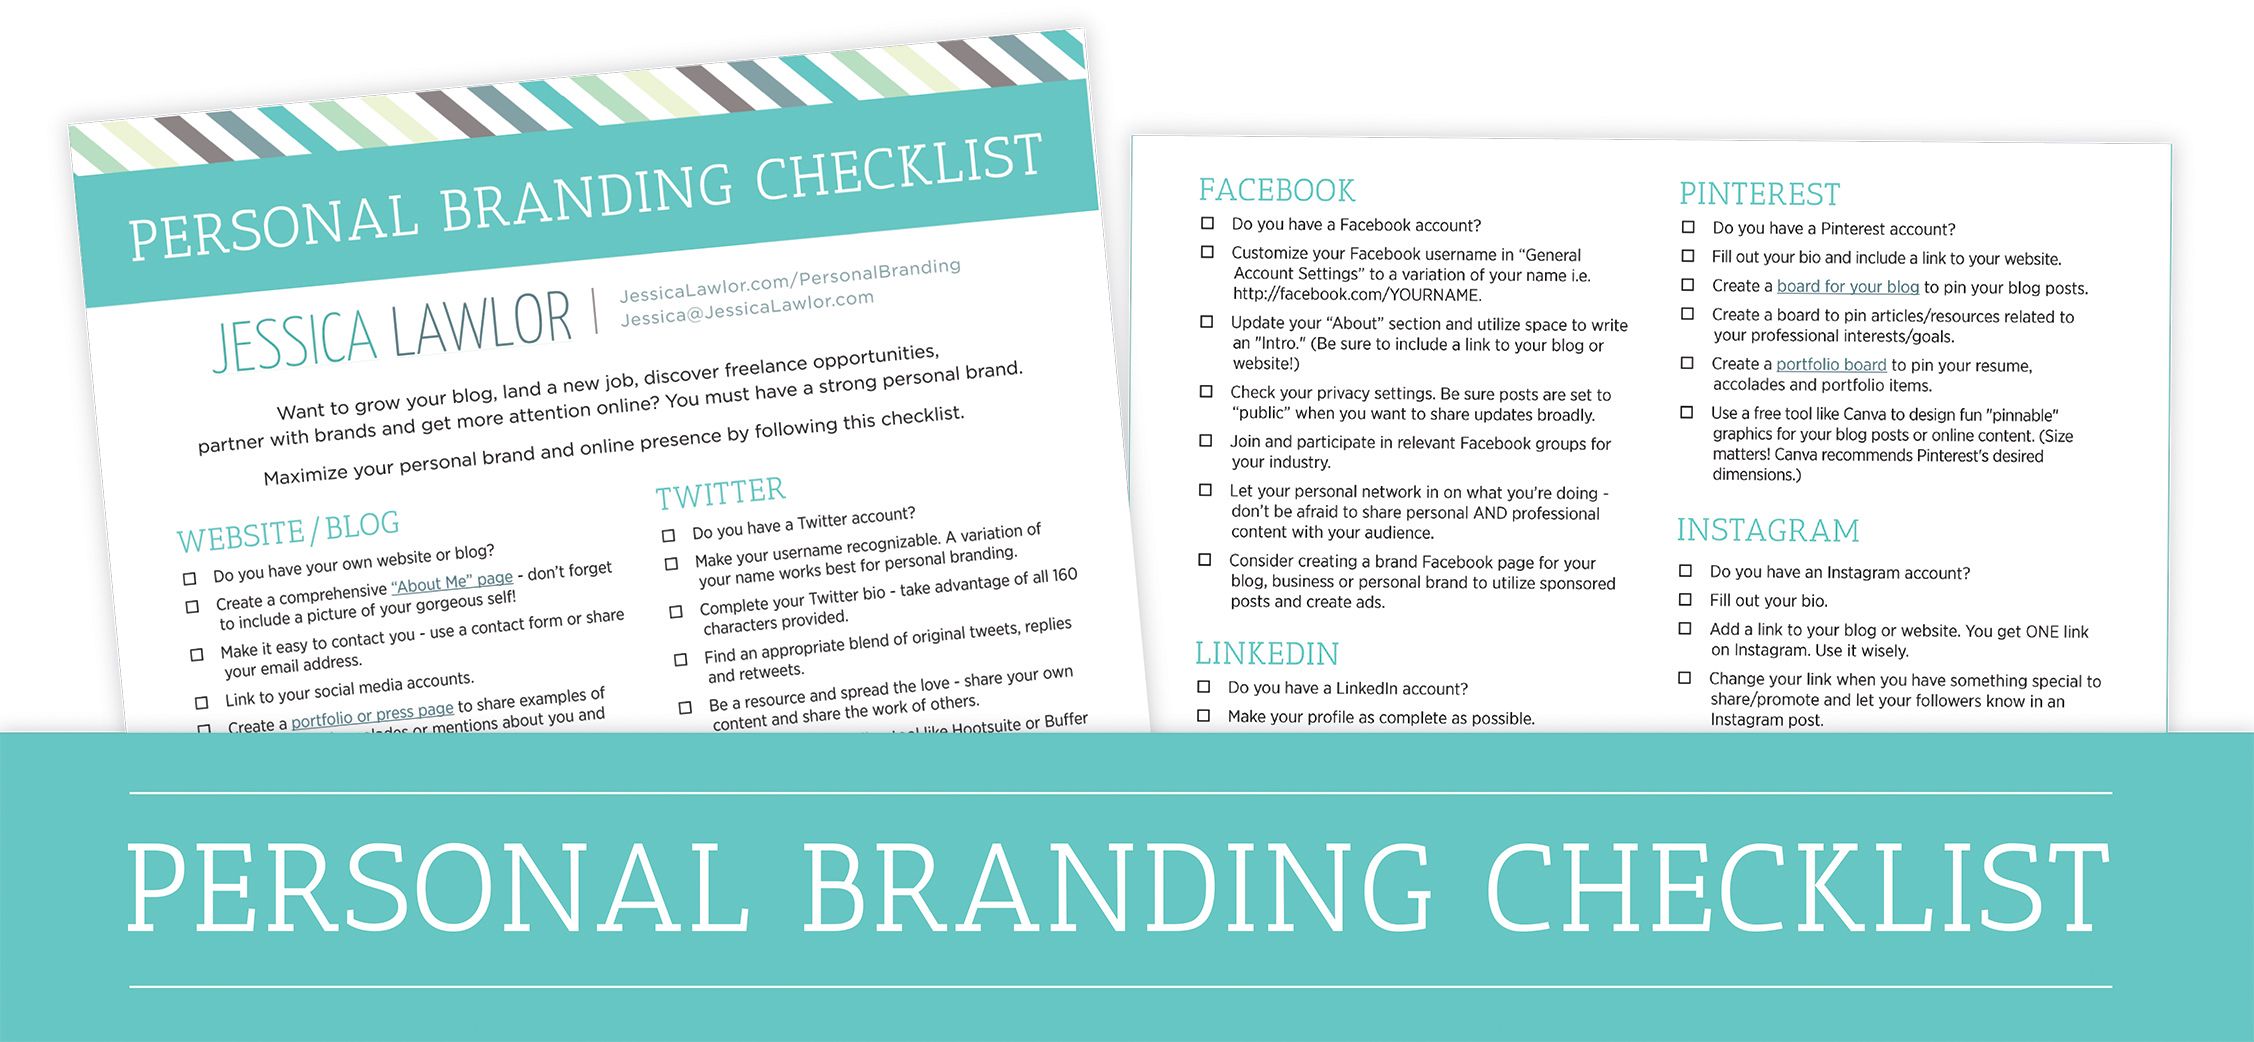 book a personal branding bootcamp session jessica lawlor personal branding checklist exclusive for personal branding bootcamp students